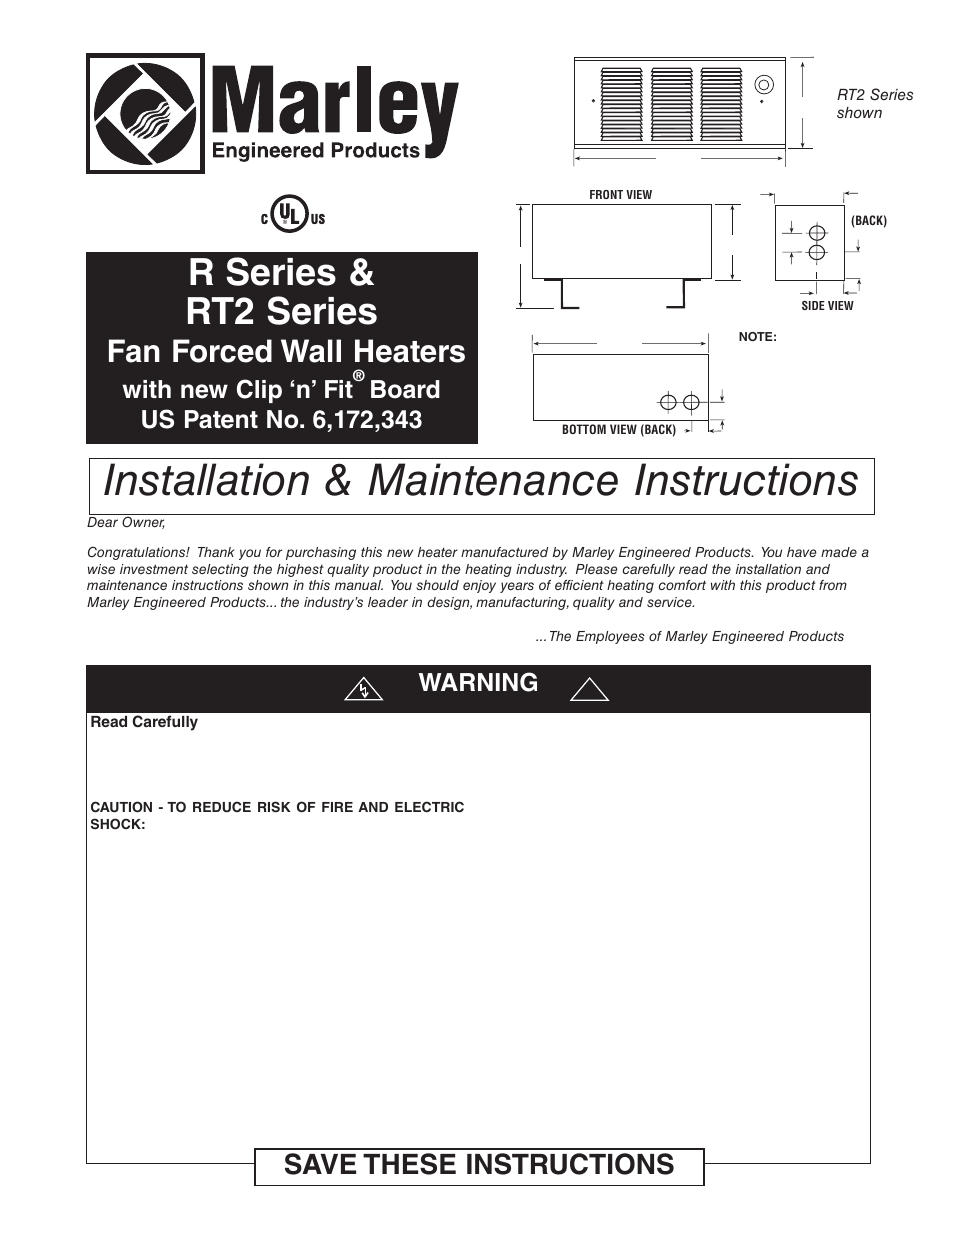 medium resolution of qmark gfr series fan forced wall heaters user manual 12 pages marley engineered products thermostat wiring